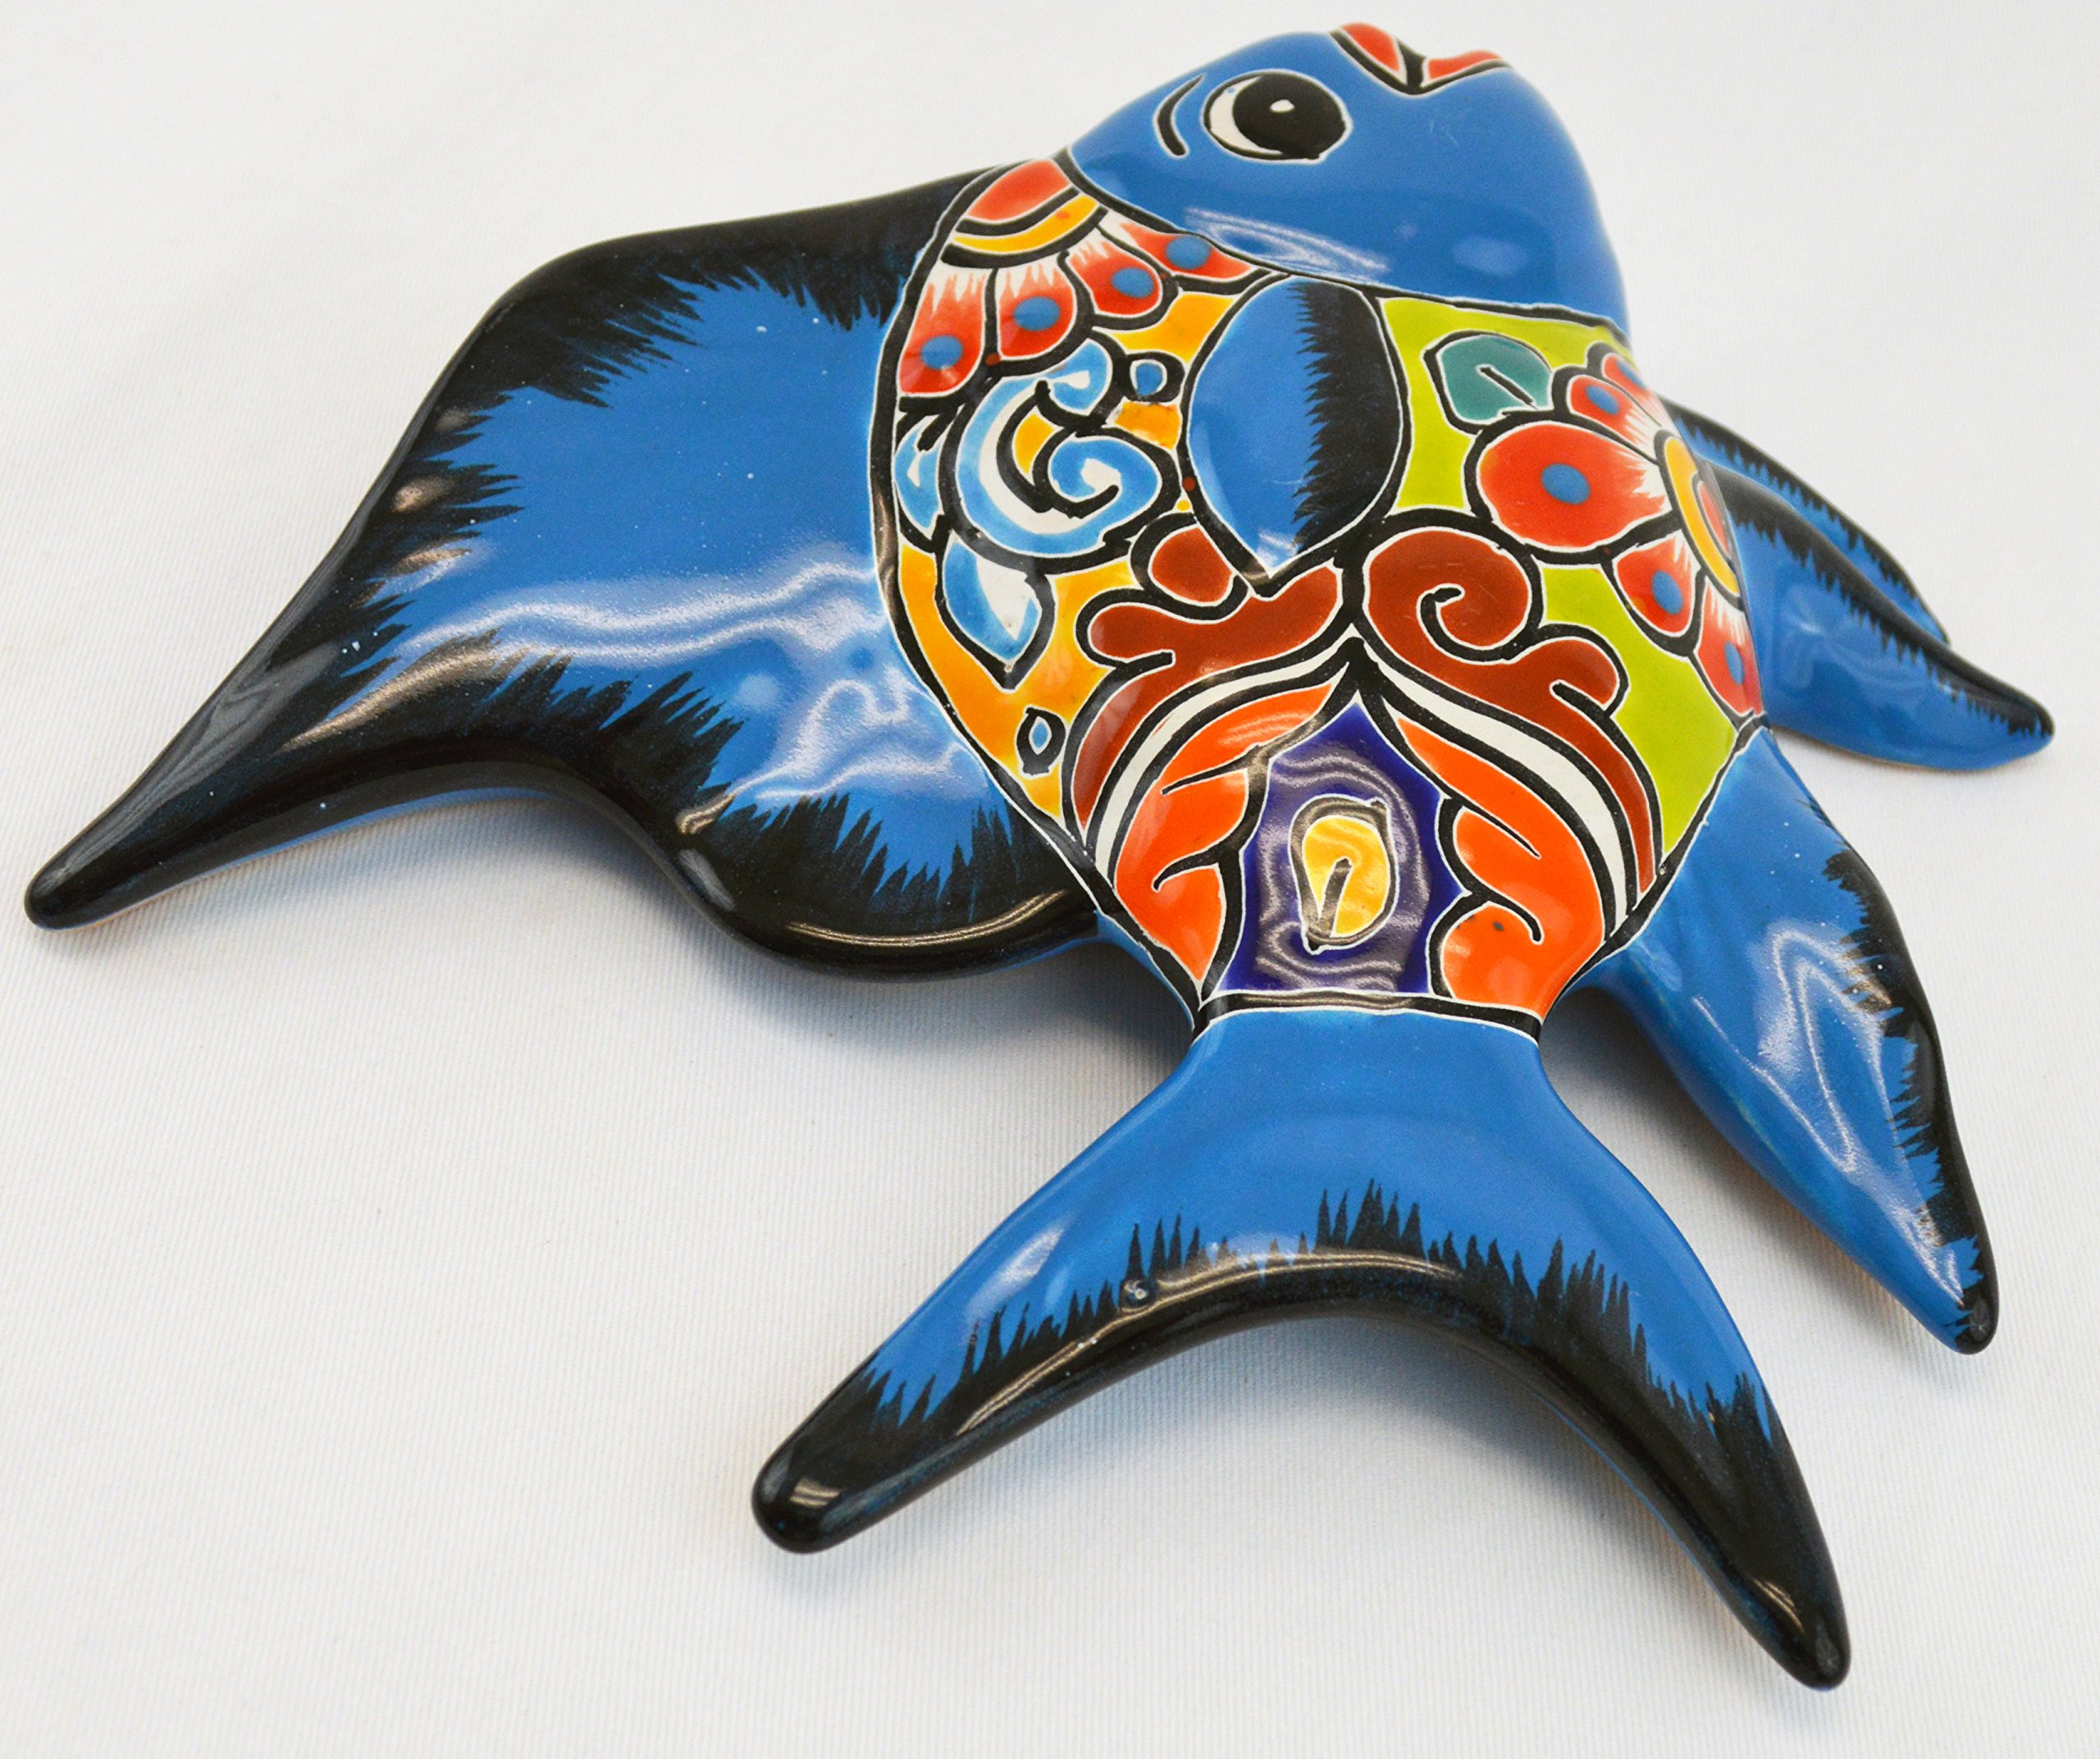 Avera Products Talavera Wall Angel Fish 8x11 Hand Painted Ceramic Garden Decor (Turquoise) by Avera Products (Image #3)